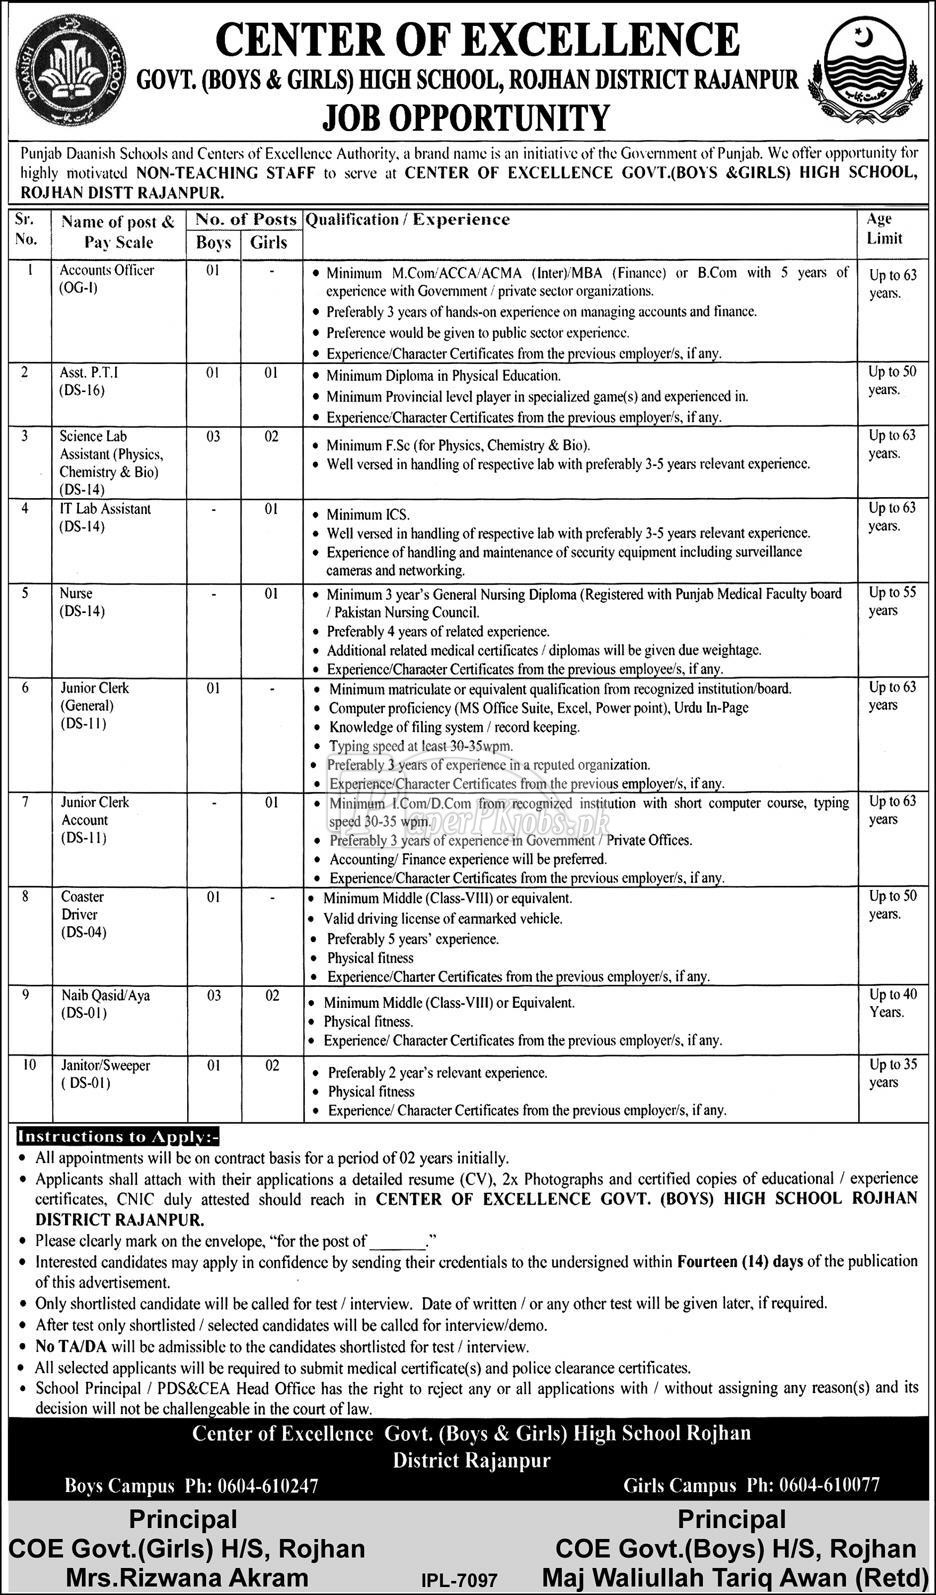 Center of Excellence Govt. Boys & Girls High School Rajanpur Jobs 2018